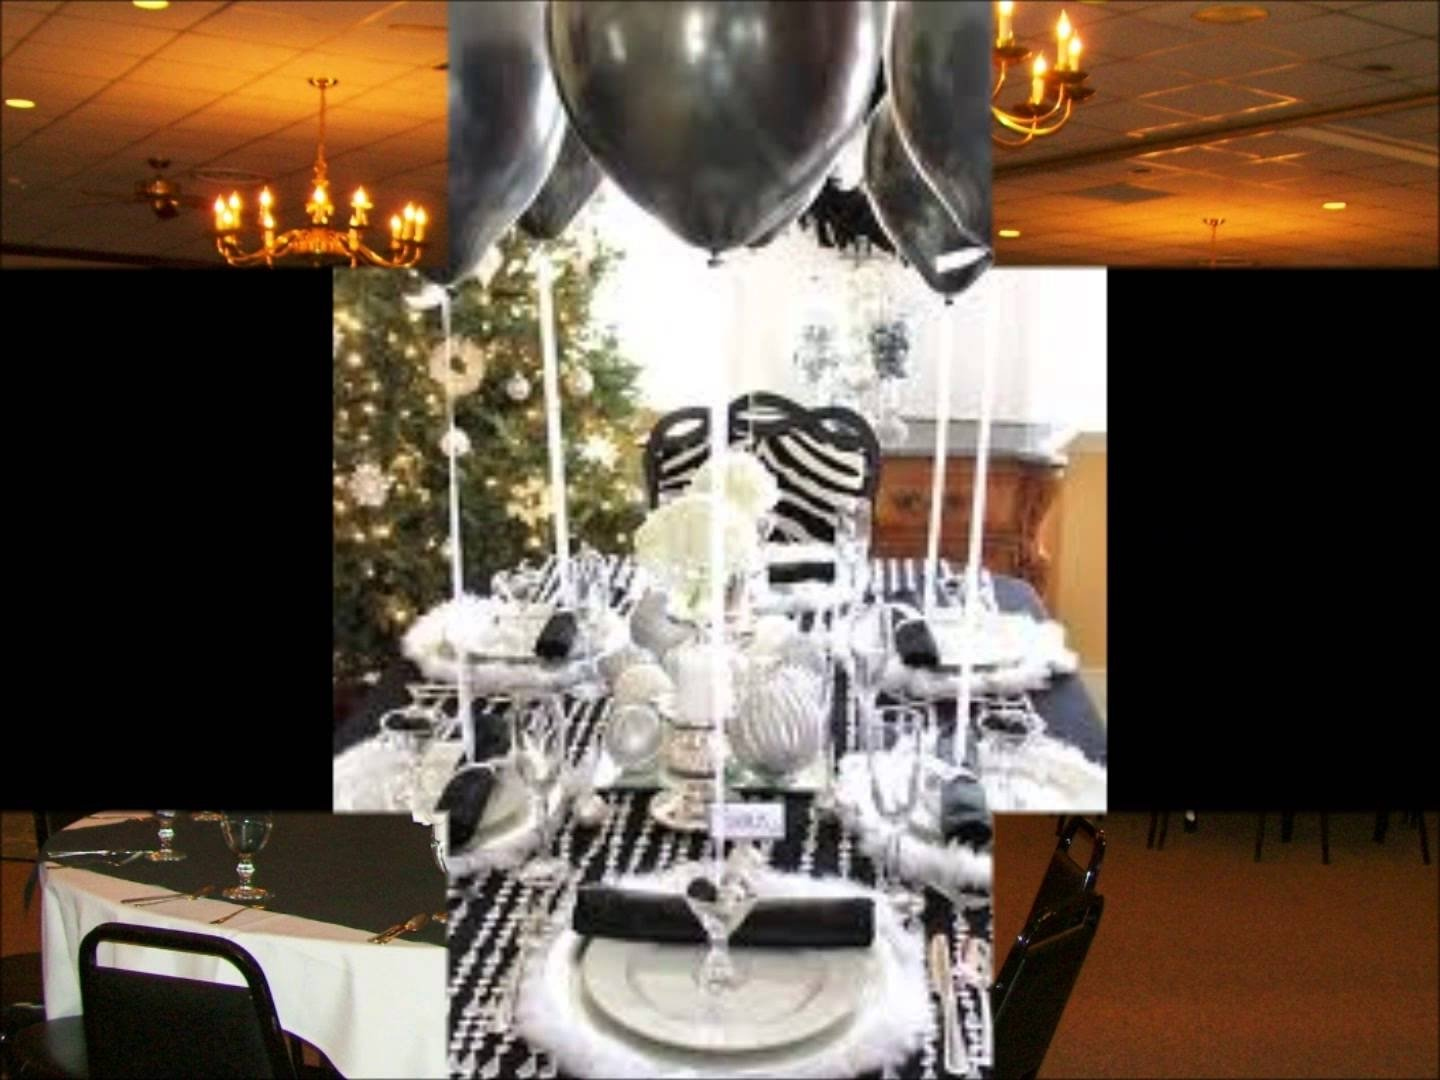 10 Most Popular Party Ideas For 40Th Birthday 40th birthday party ideas suppliesthemesdecorations and favors 10 2021